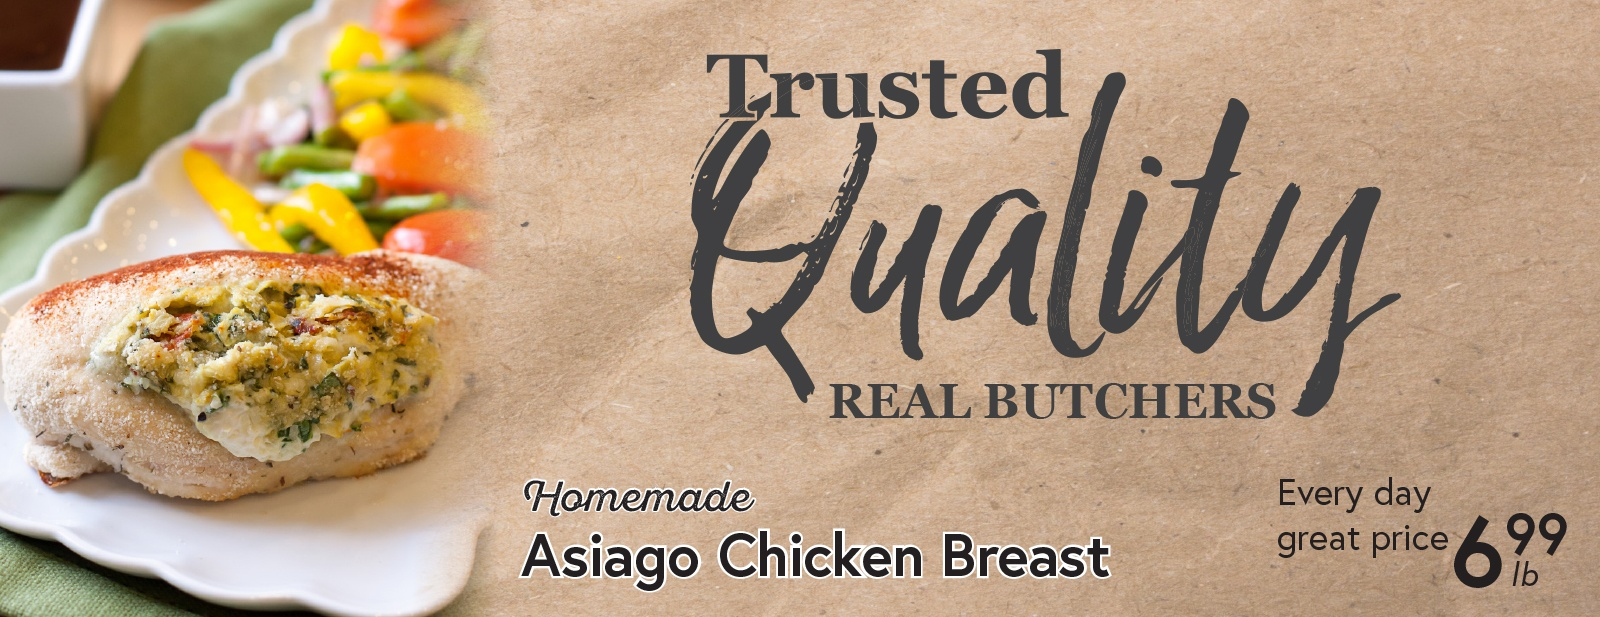 Trusted Quality Real Butchers